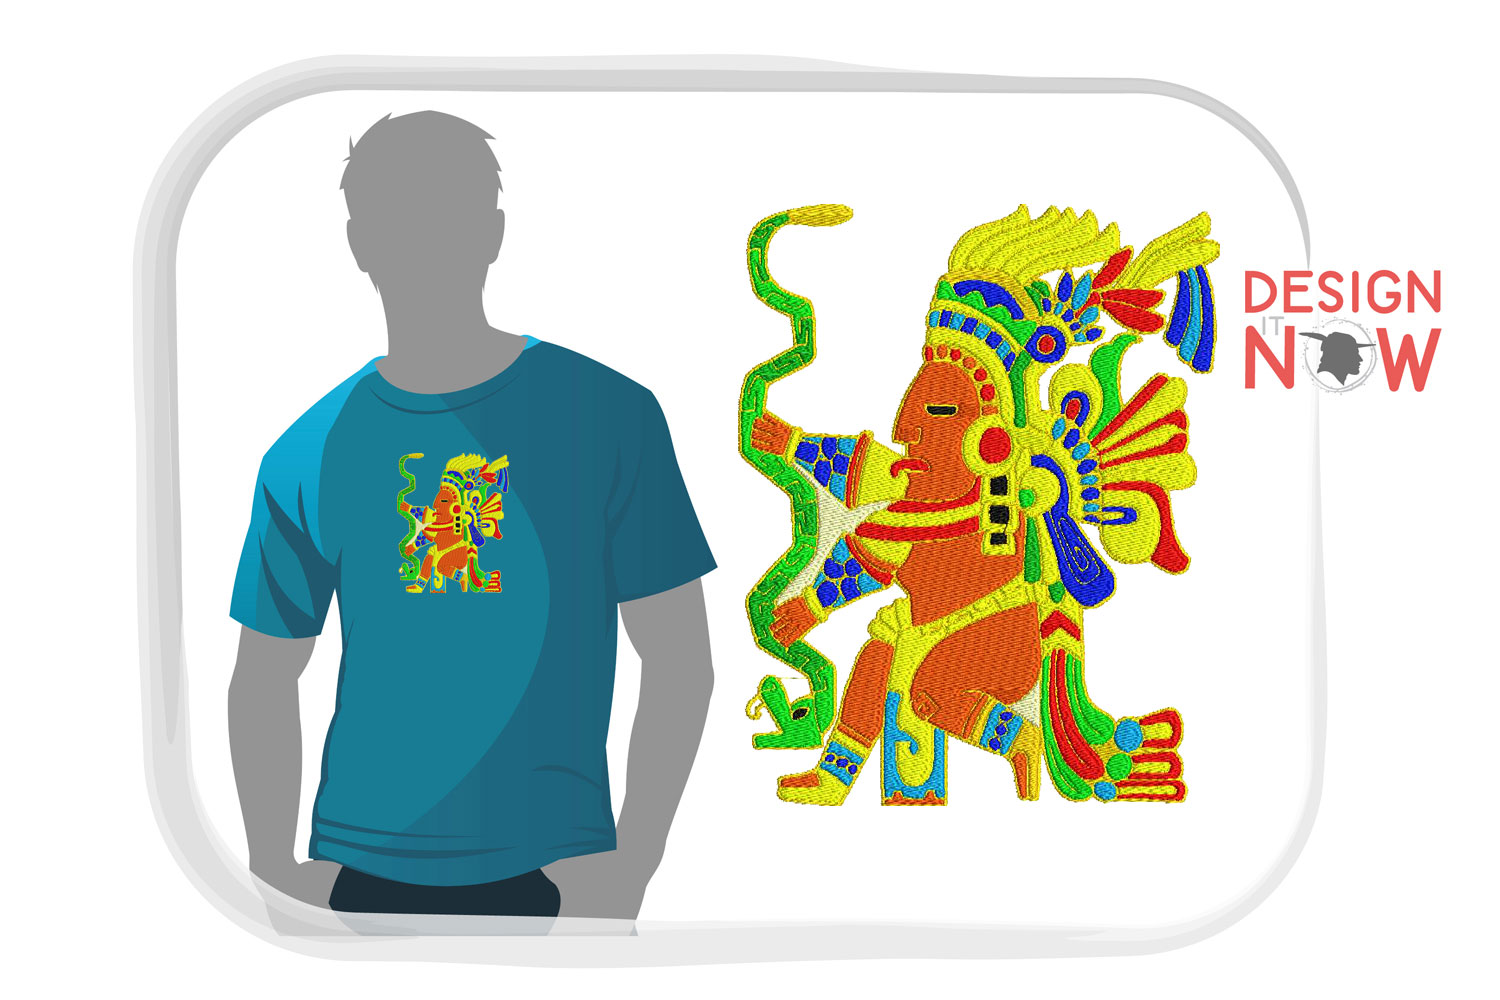 Inca Culture Embroidery Design, Inca Mythology Embroidery example image 4